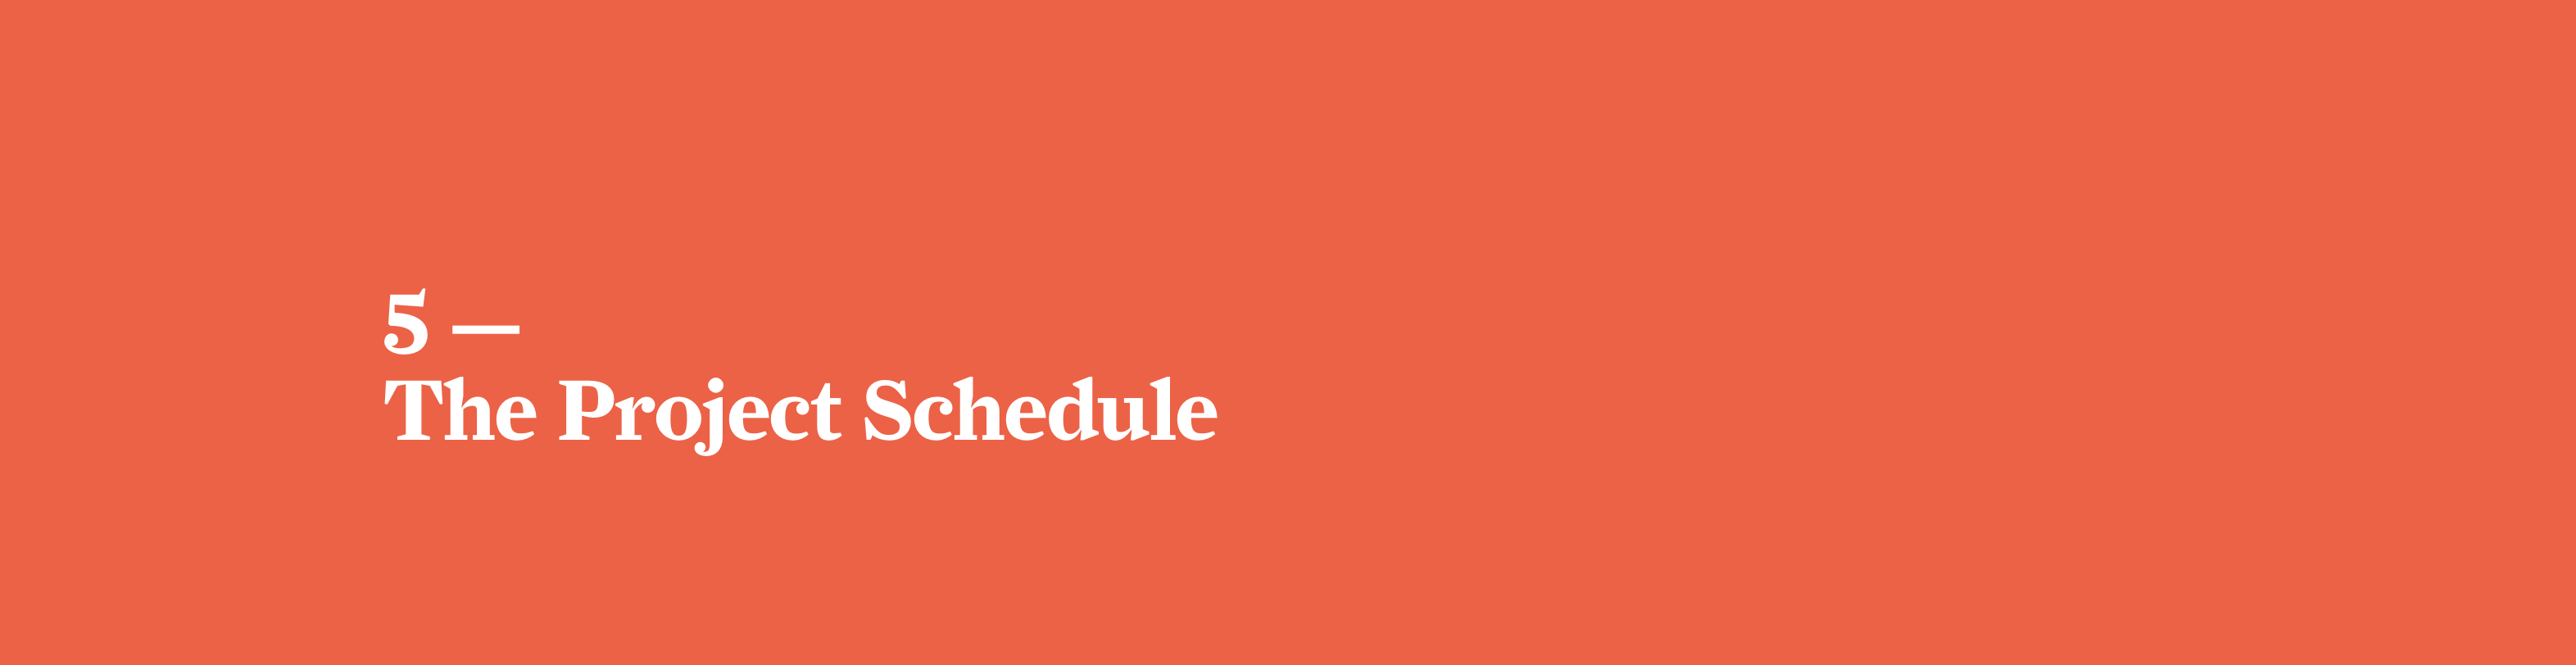 The Beginner's Guide to Web Design Project Management: The Project Schedule